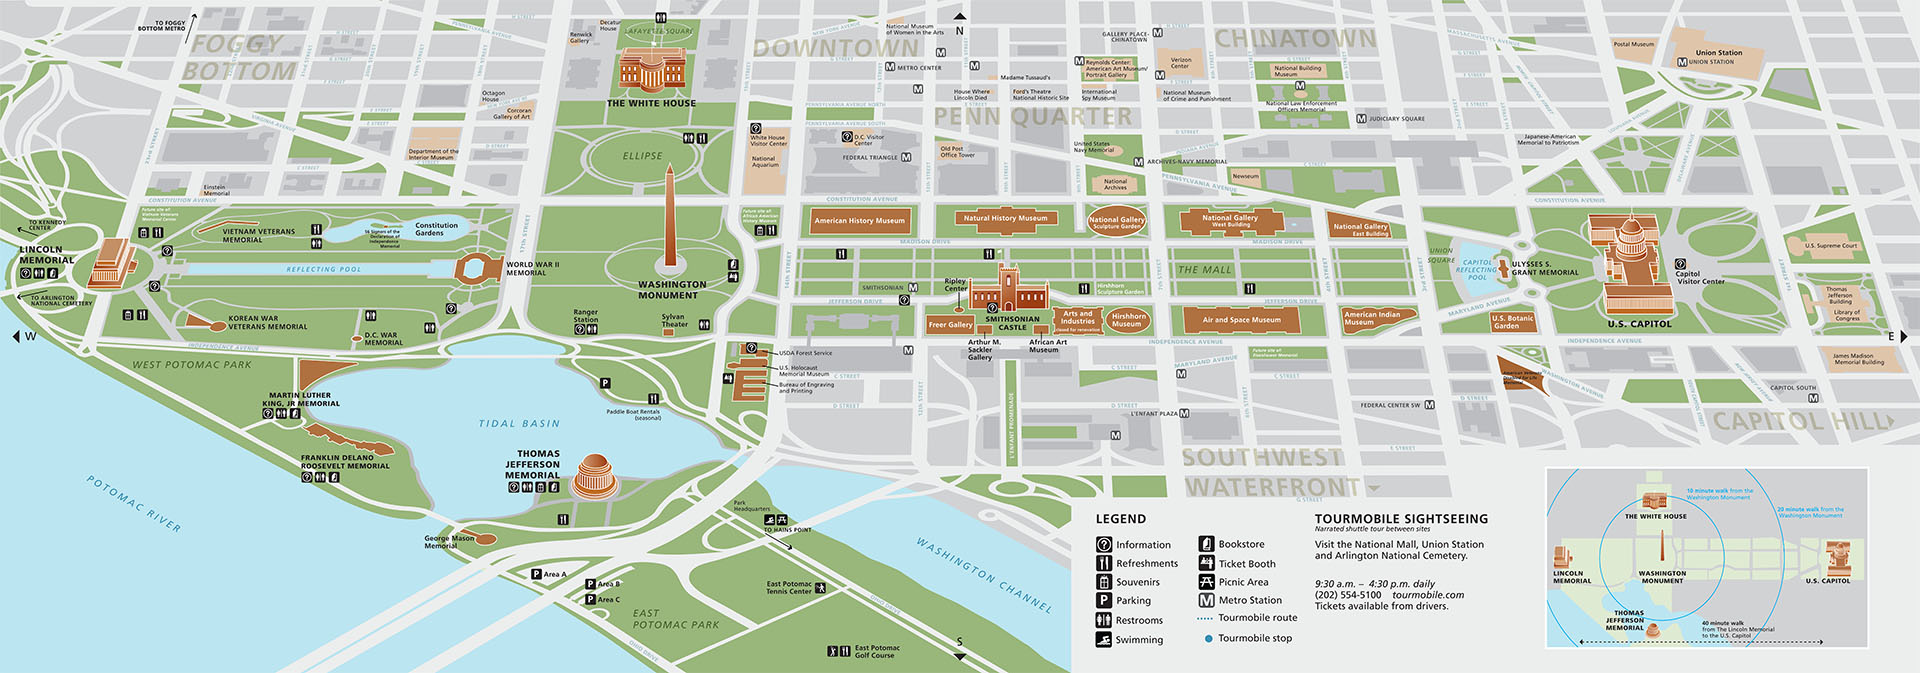 Memorial Mall Map National Mall and Memorial Parks | PARK MAP |